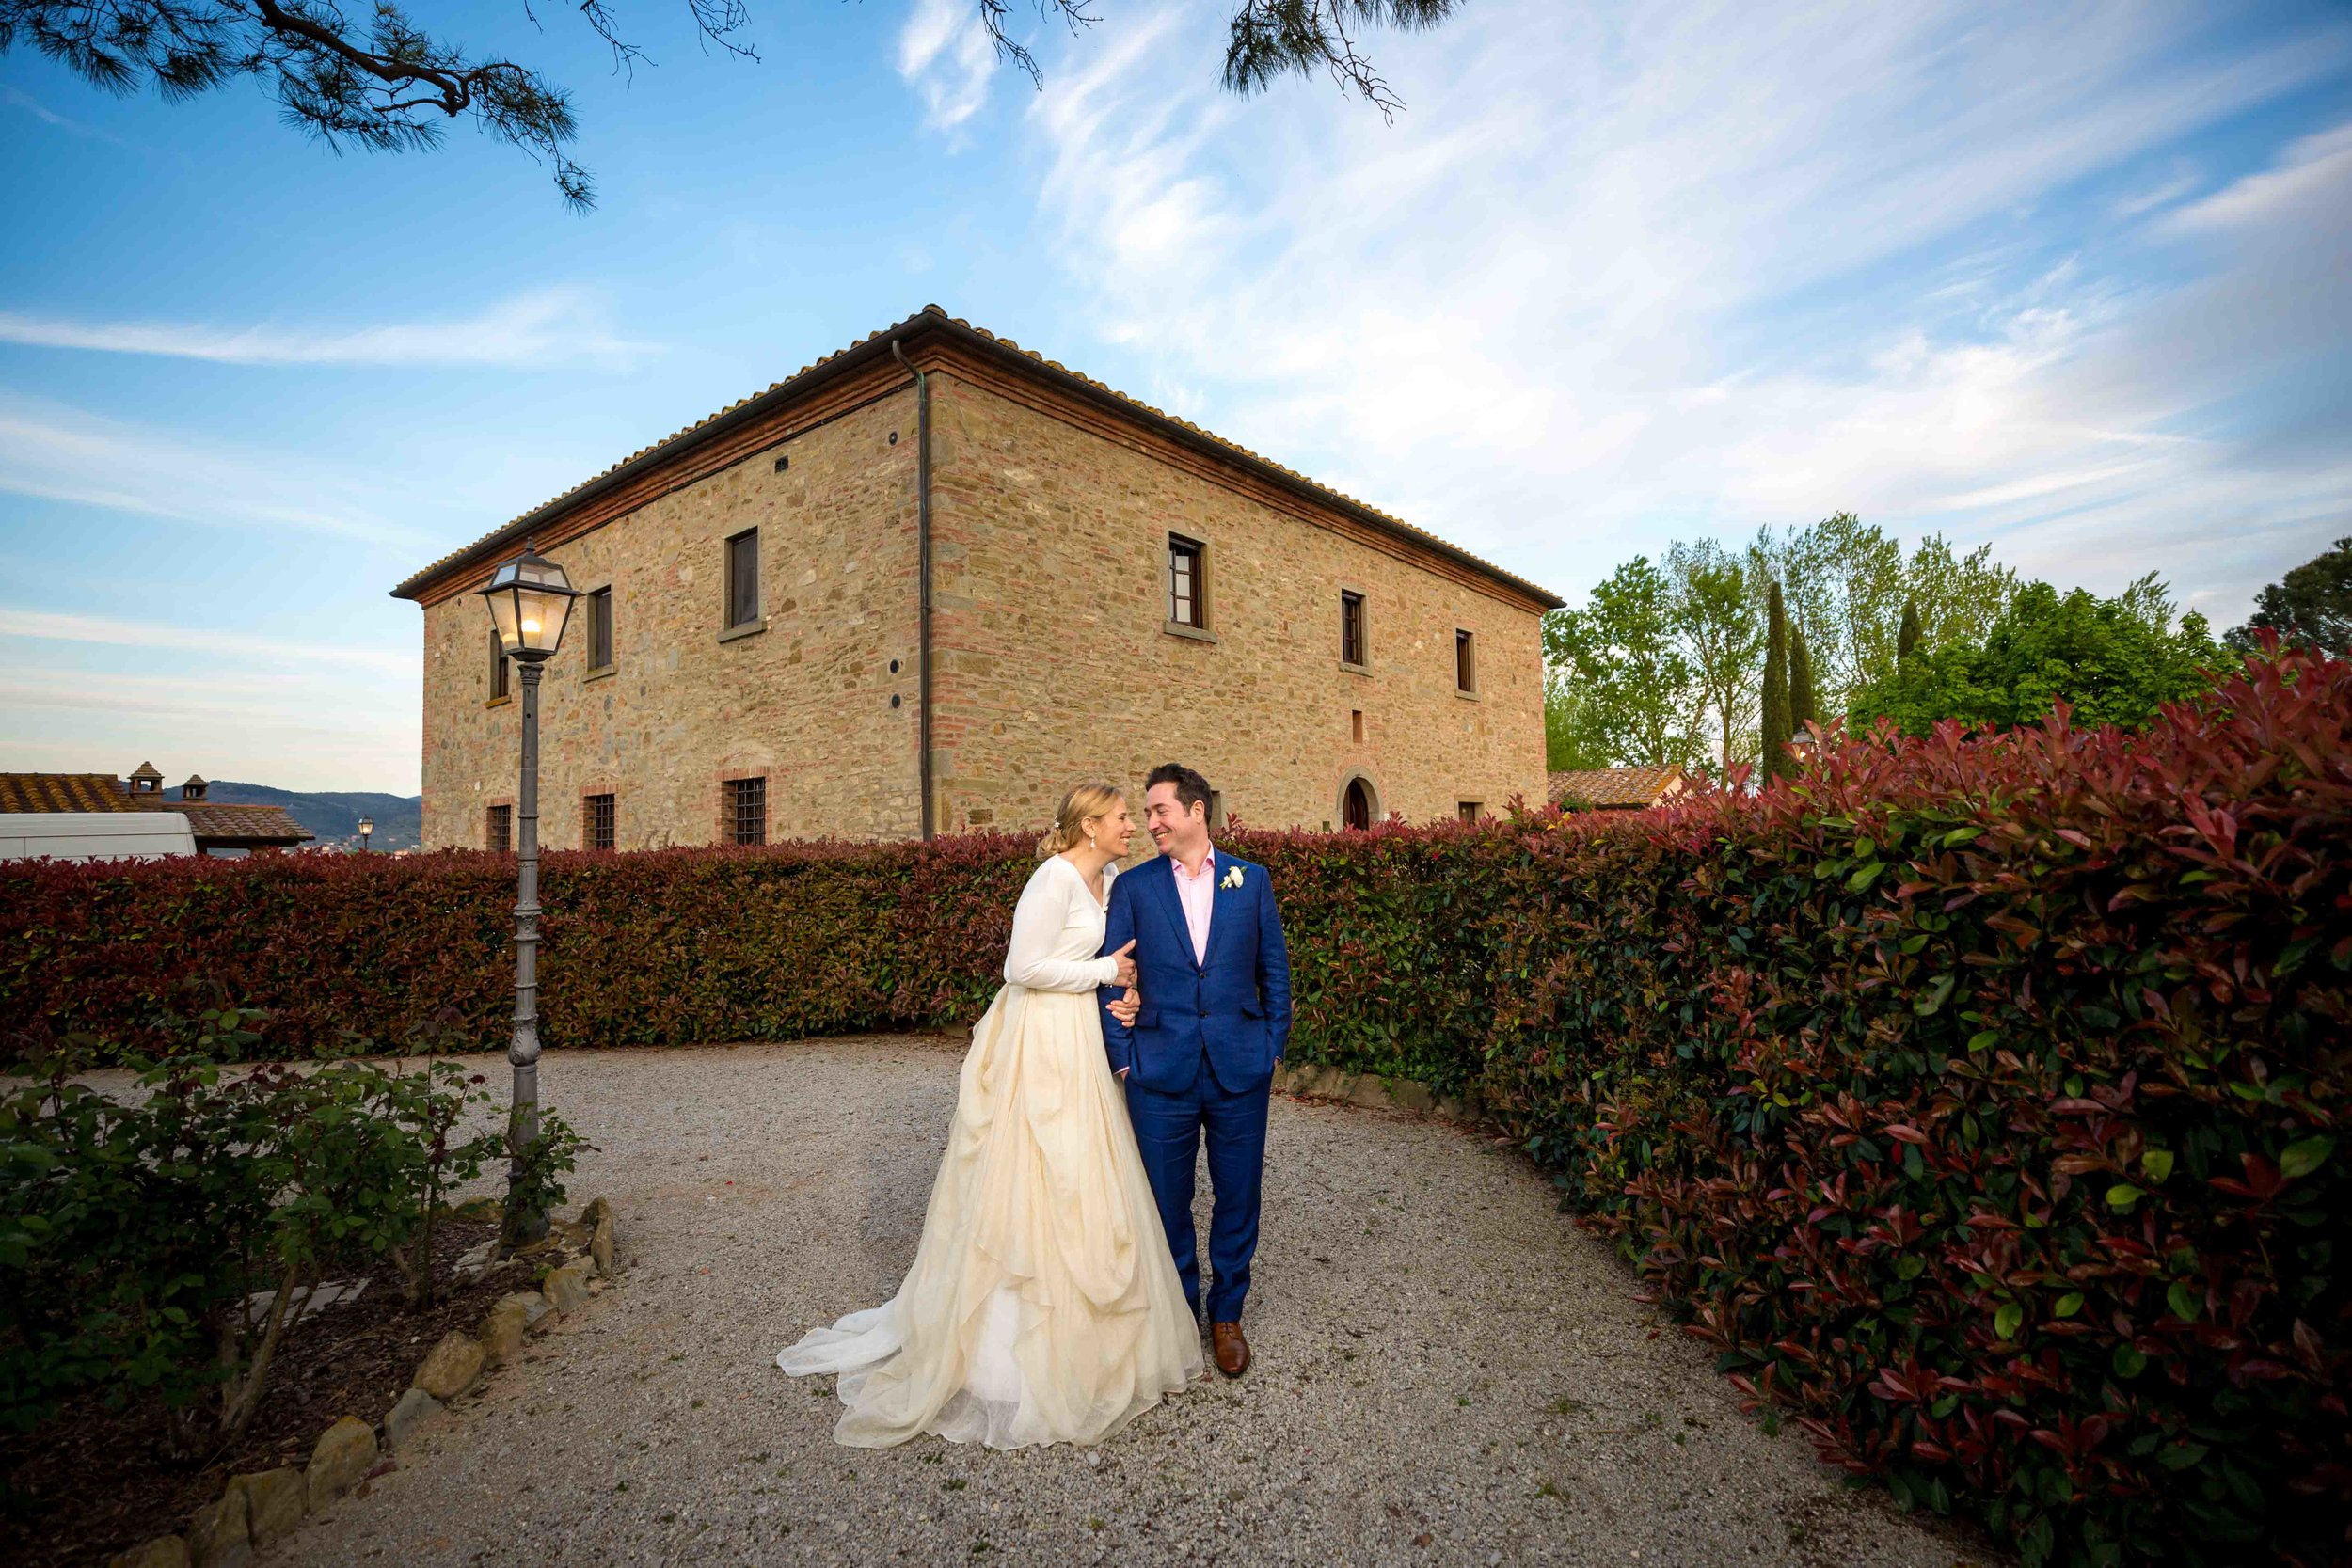 Cortona Wedding Photographer Tuscany Tuscan Emma Villas Plus Italy Destination Photgraphy-85.jpg